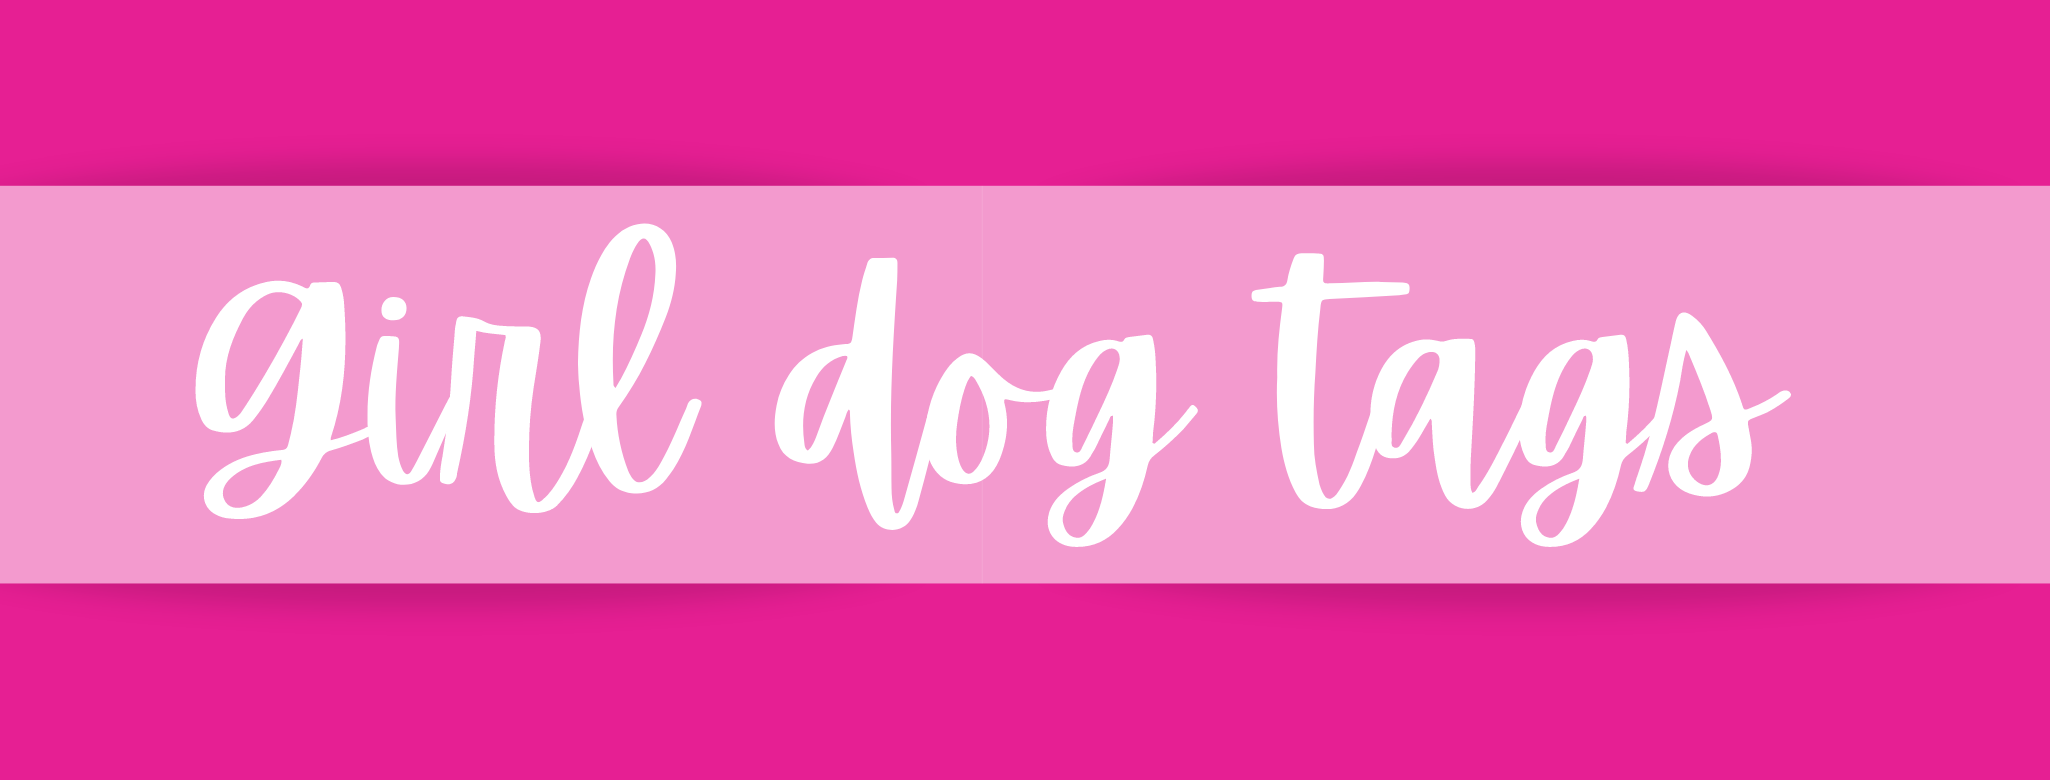 girl-dog-banner2.png